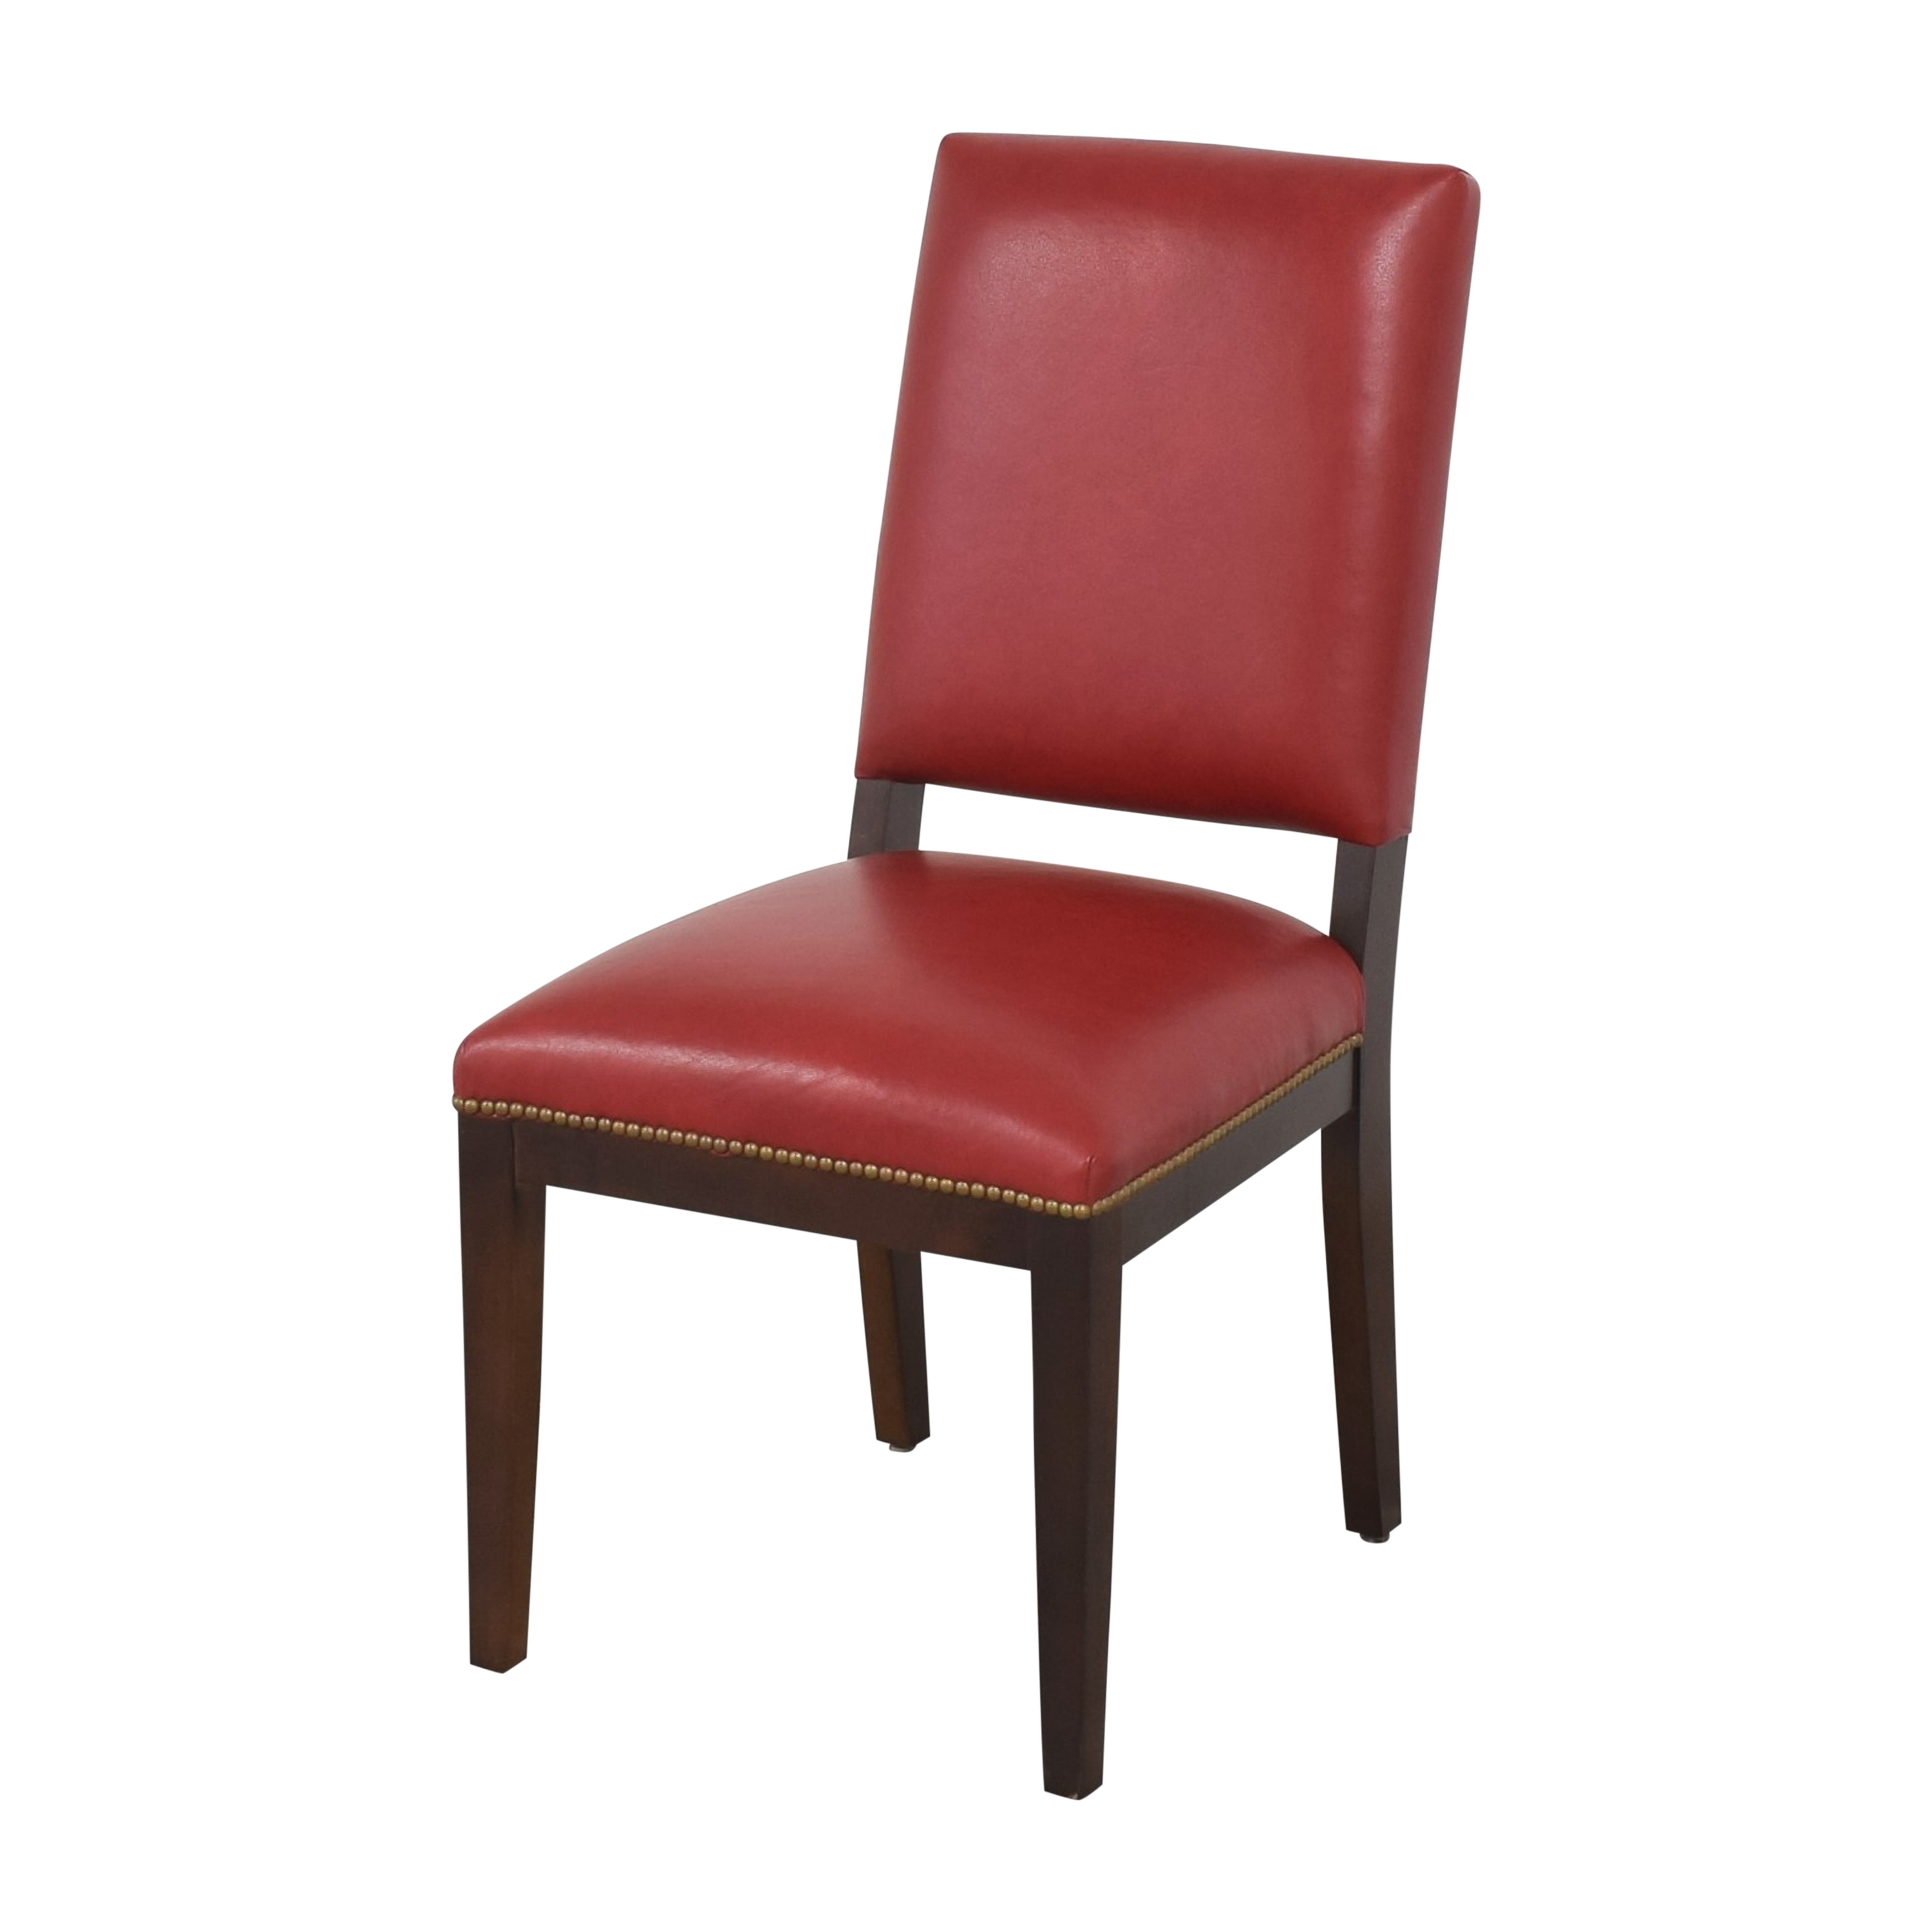 Nailhead Dining Chairs / Dining Chairs